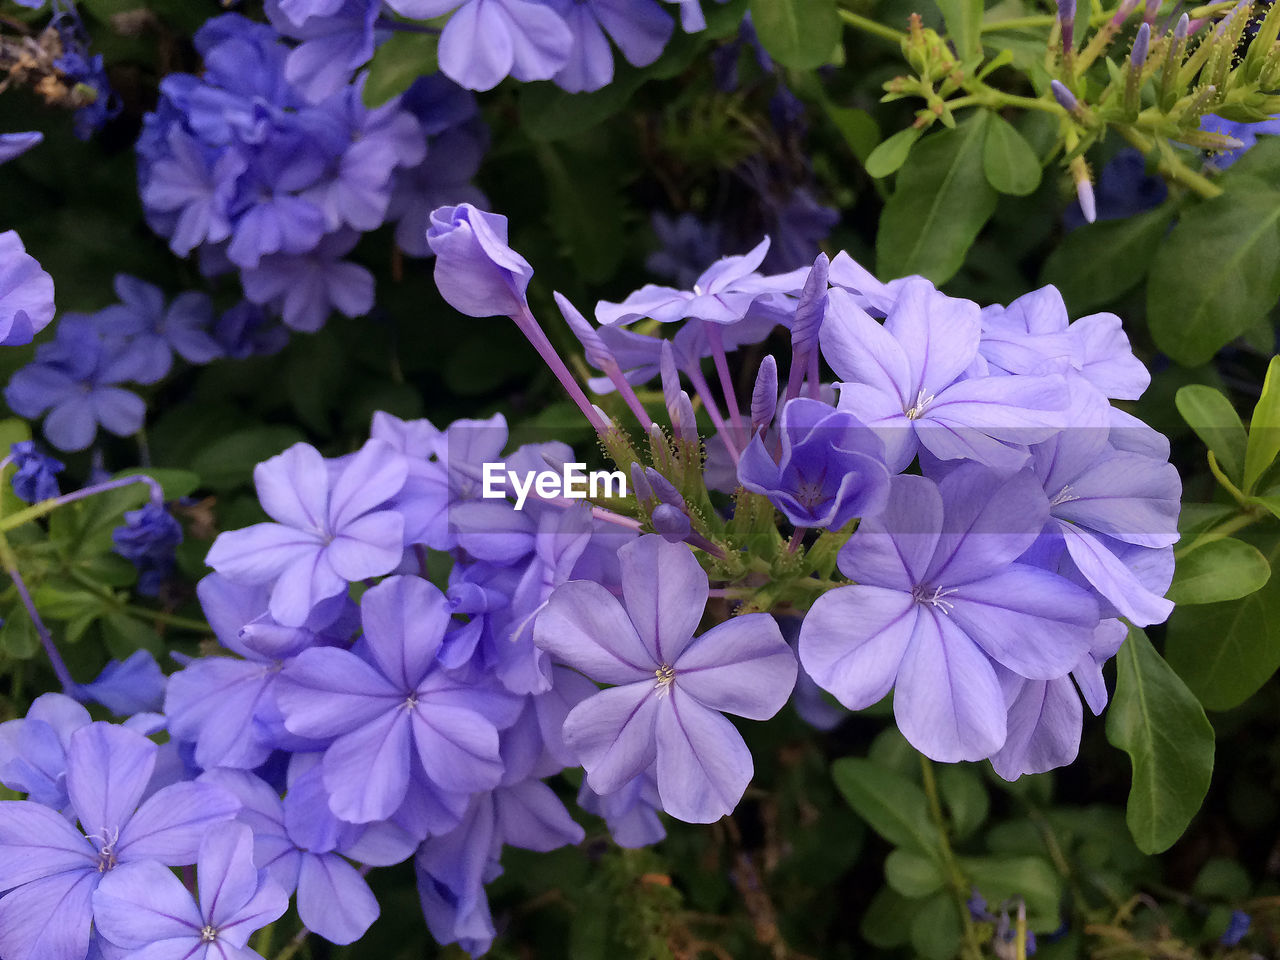 flower, beauty in nature, growth, petal, nature, fragility, plant, purple, freshness, outdoors, blooming, flower head, leaf, day, no people, close-up